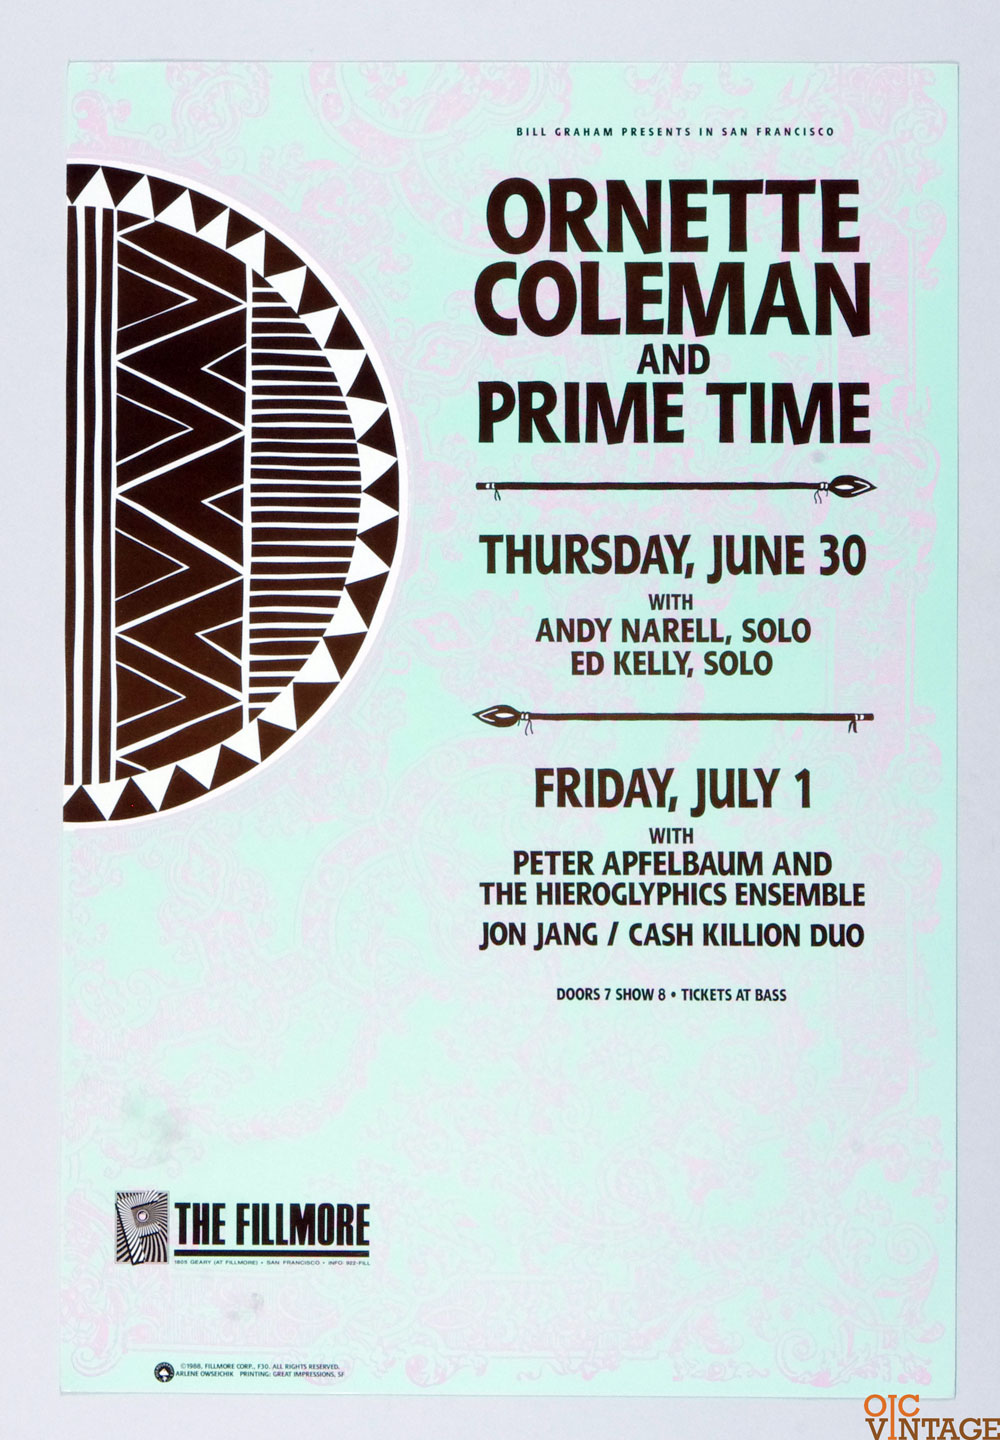 New Fillmore F030 Poster Ornette Coleman and Prime Time 1988 Jun 30